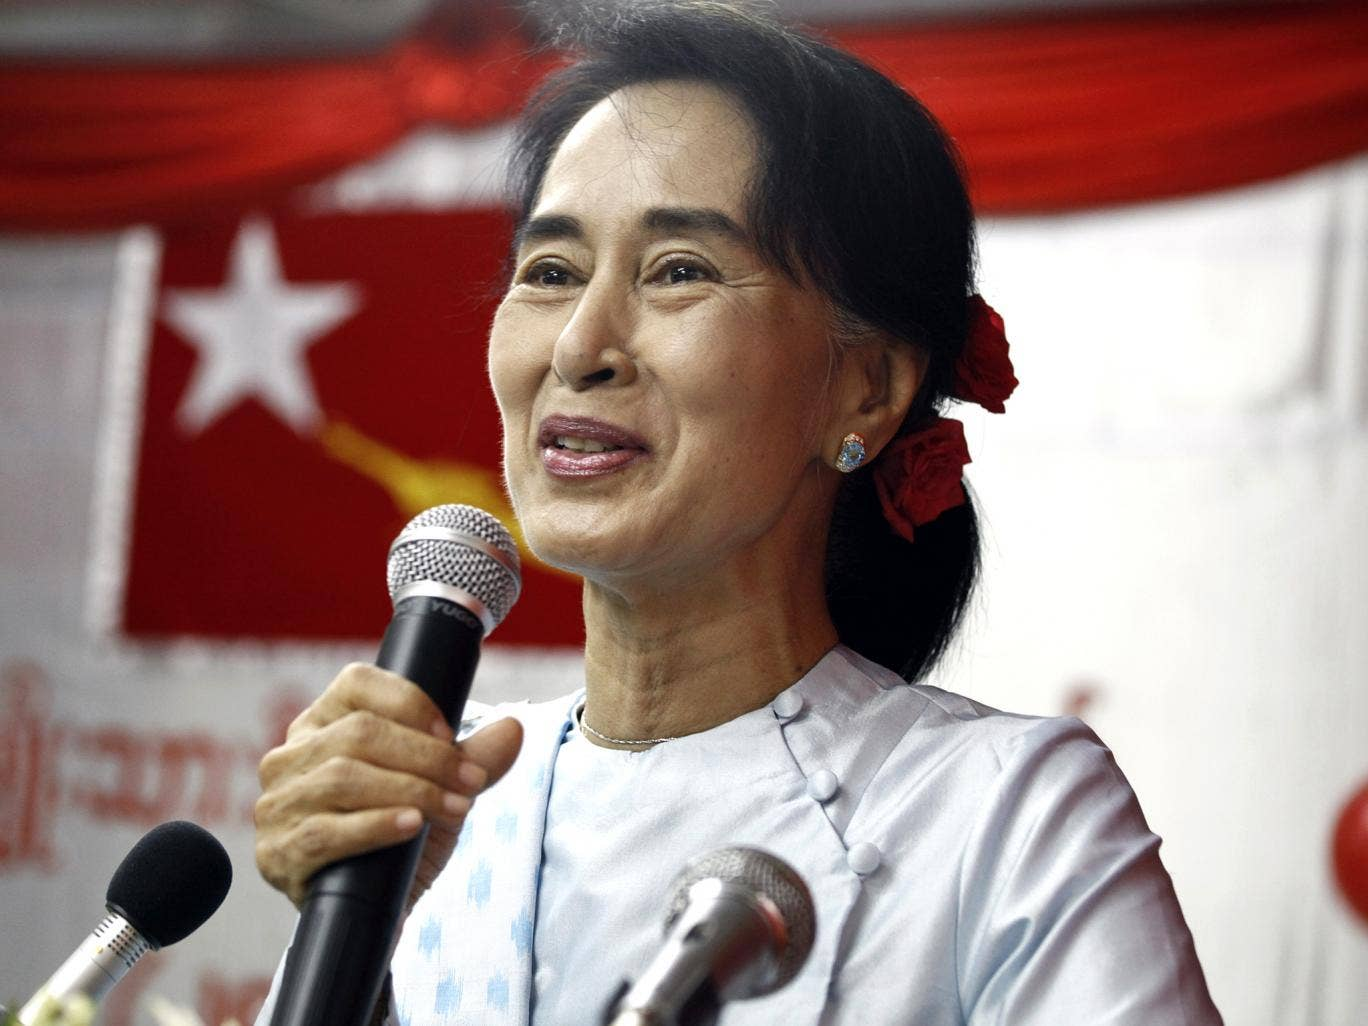 Aung San Suu Kyi delivers a speech at the National League for Democracy (NLD) headquarters in Yangon, last month